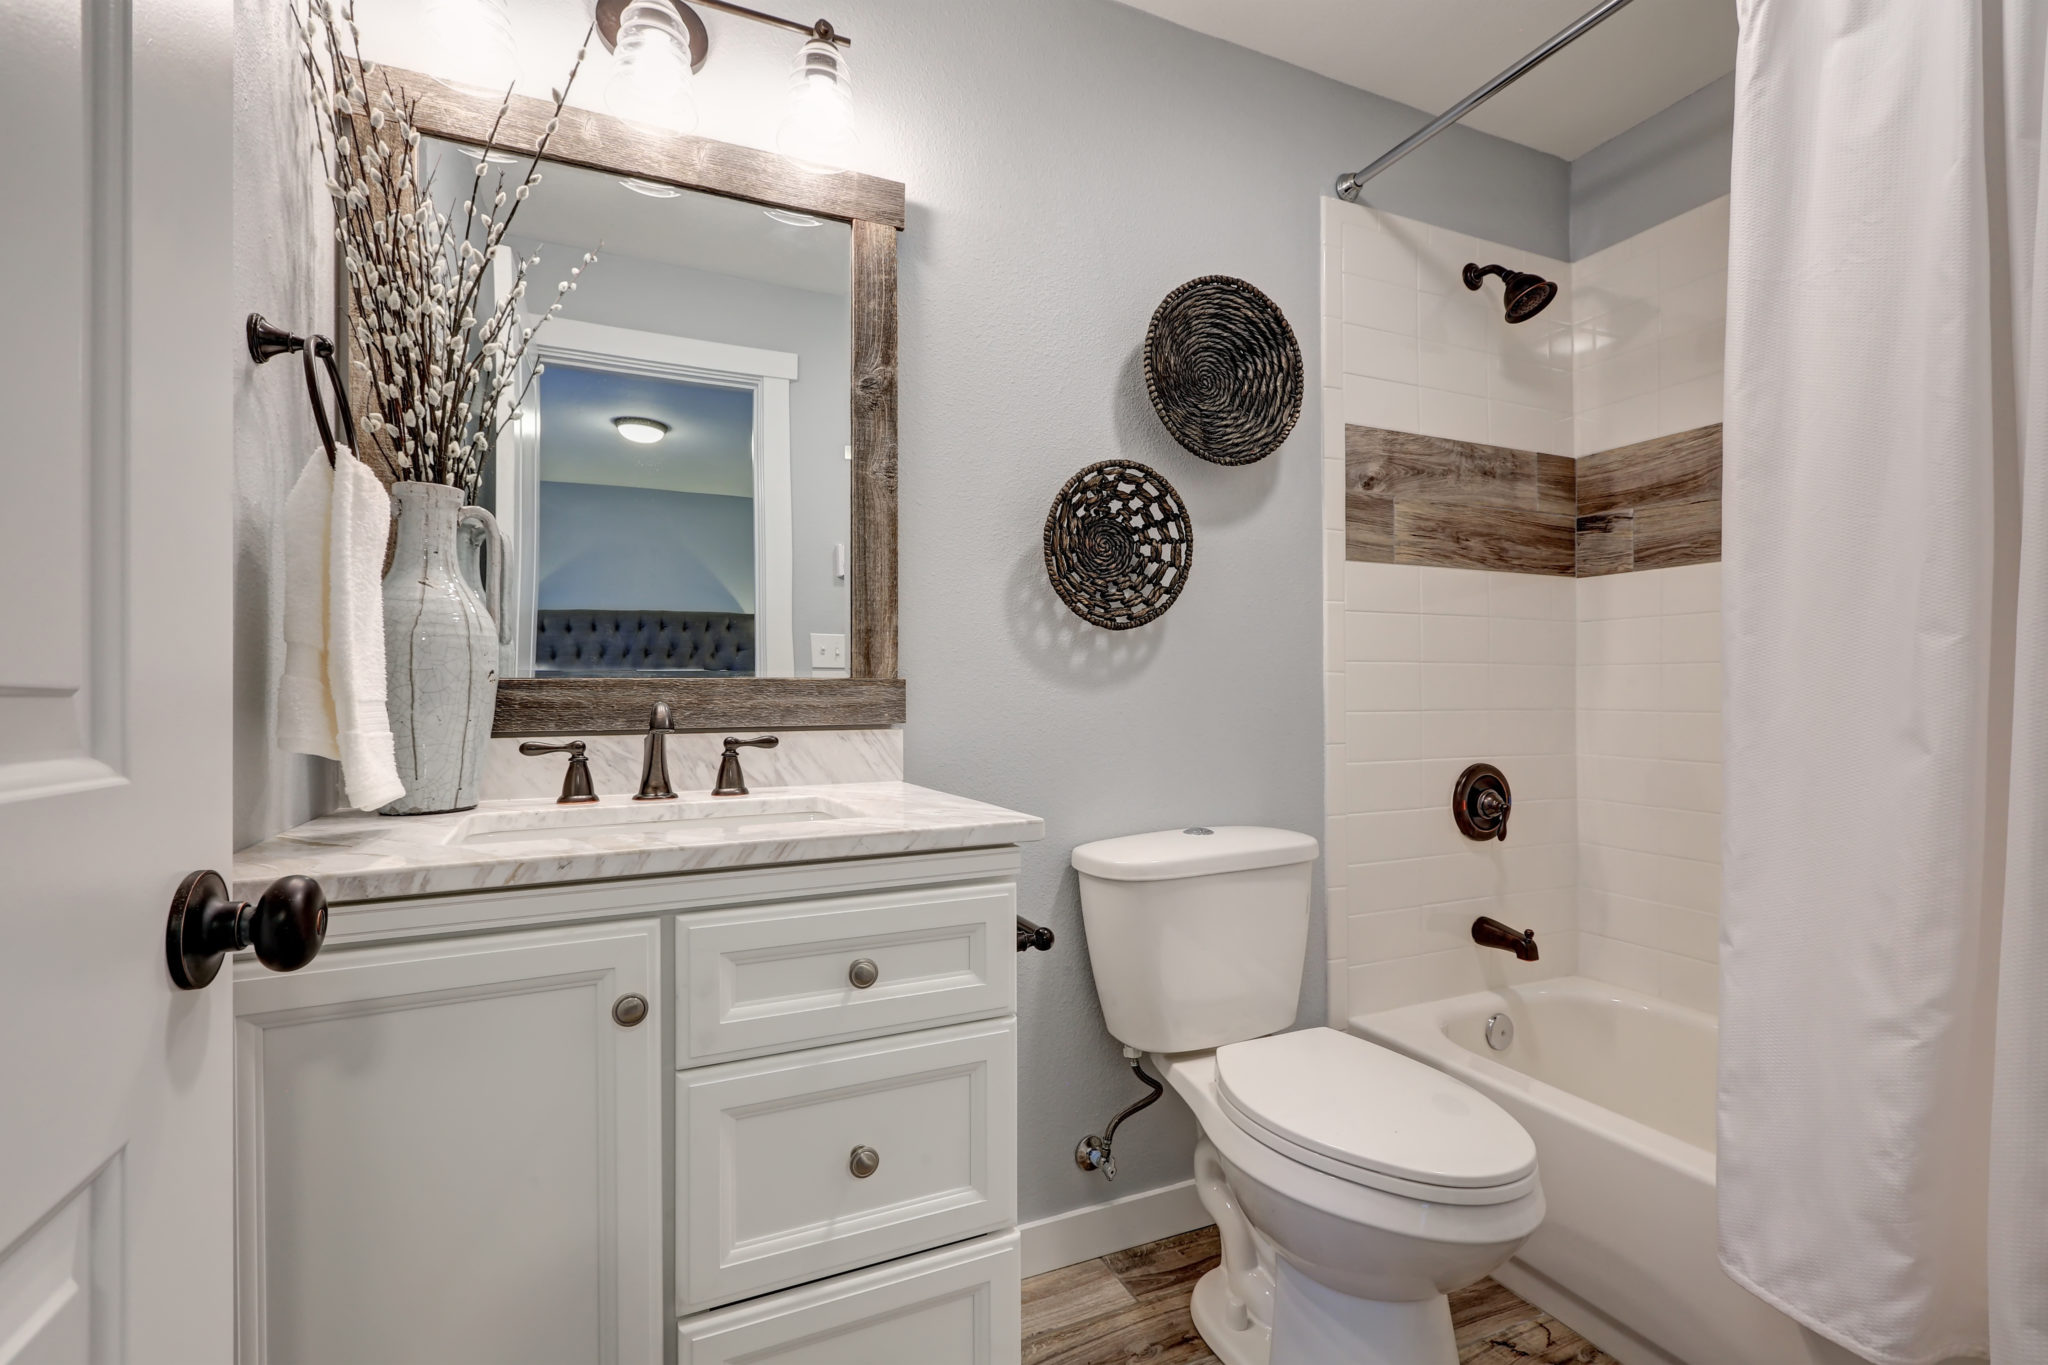 8 Tips For A Bathroom Remodel On A Budget